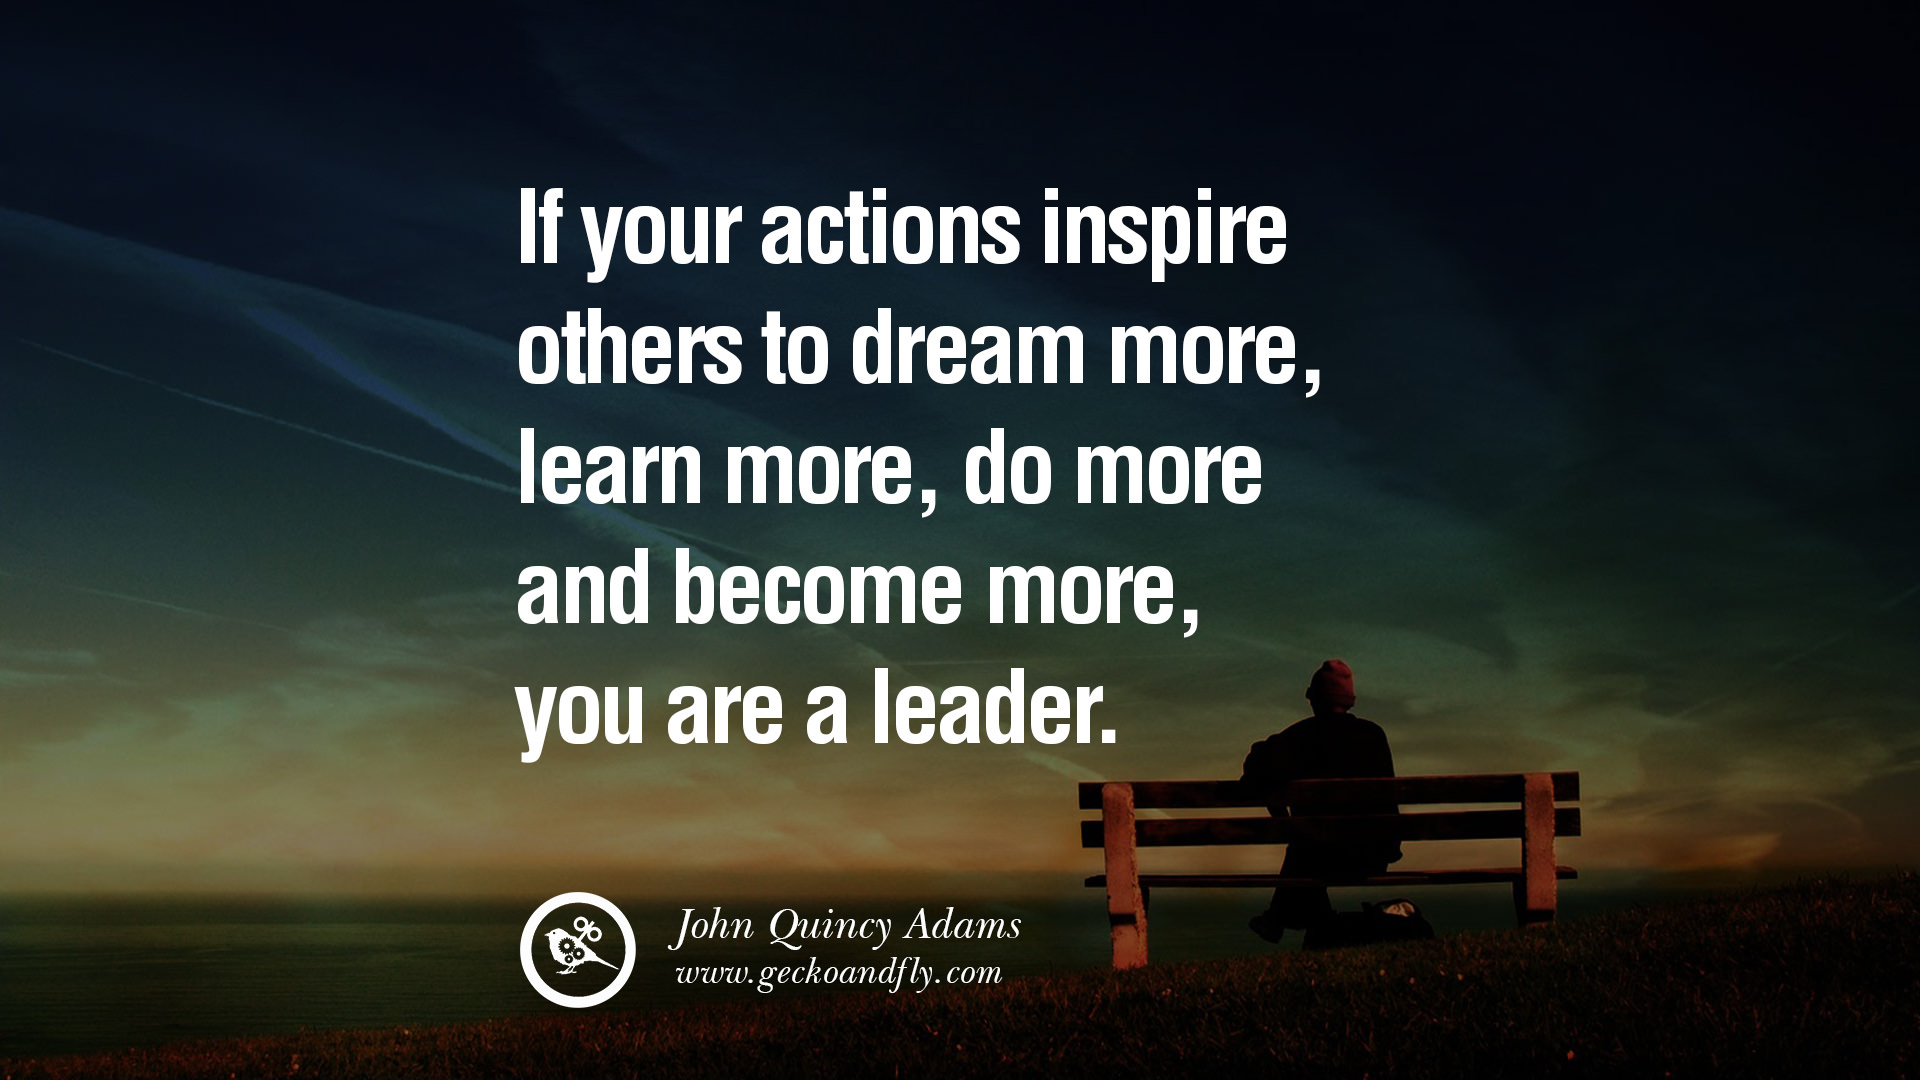 Leader At Work Quotes For Motivation. QuotesGram